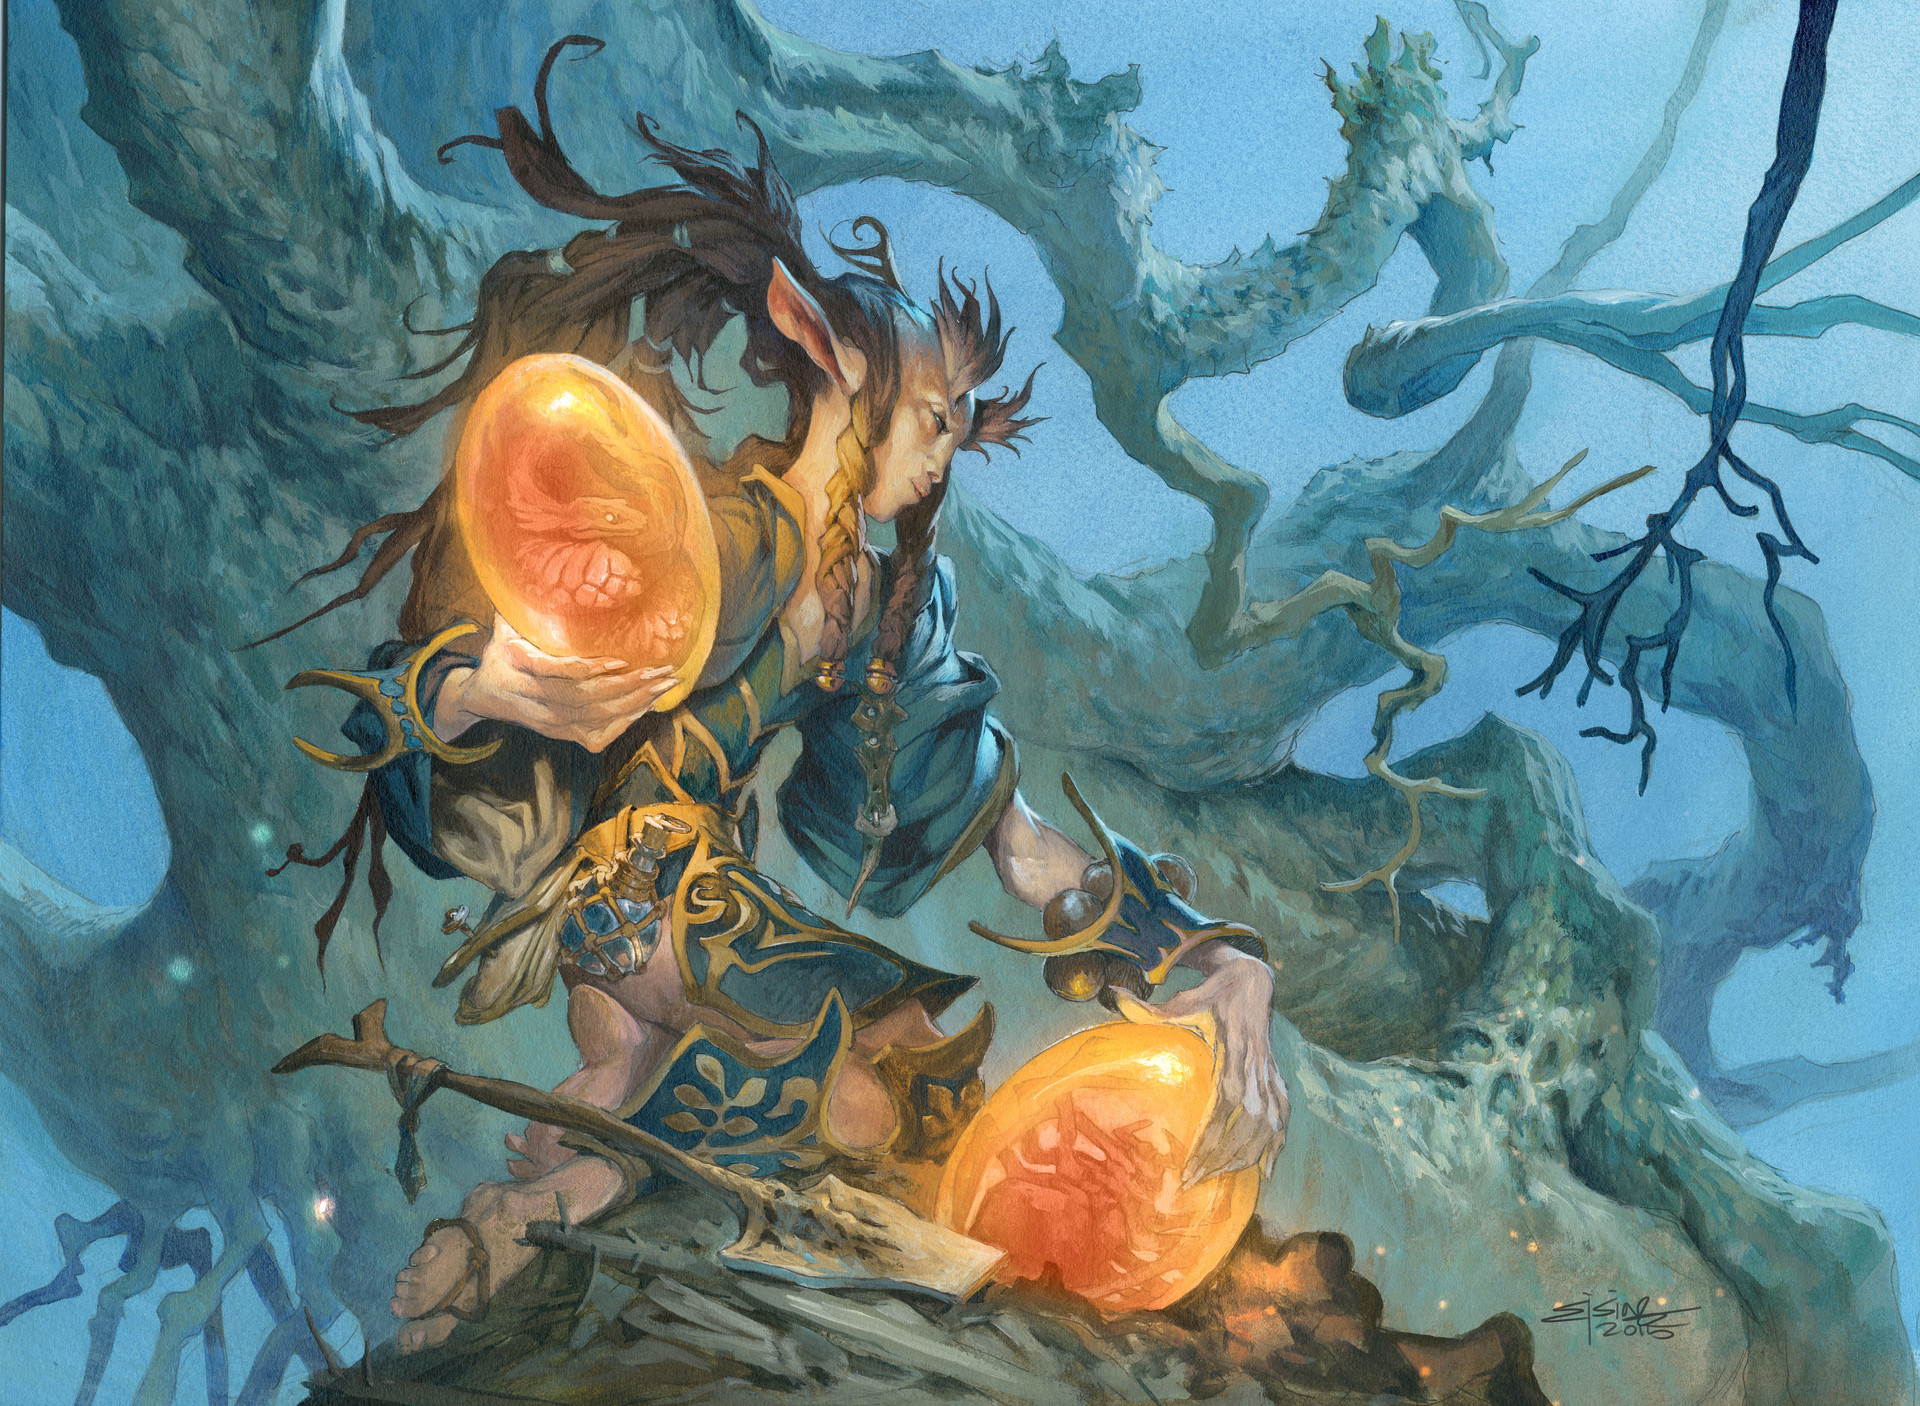 Jesper Ejsing Acrylic Painting Seed of Renewald Magic the gathering artwork for Commander 2016